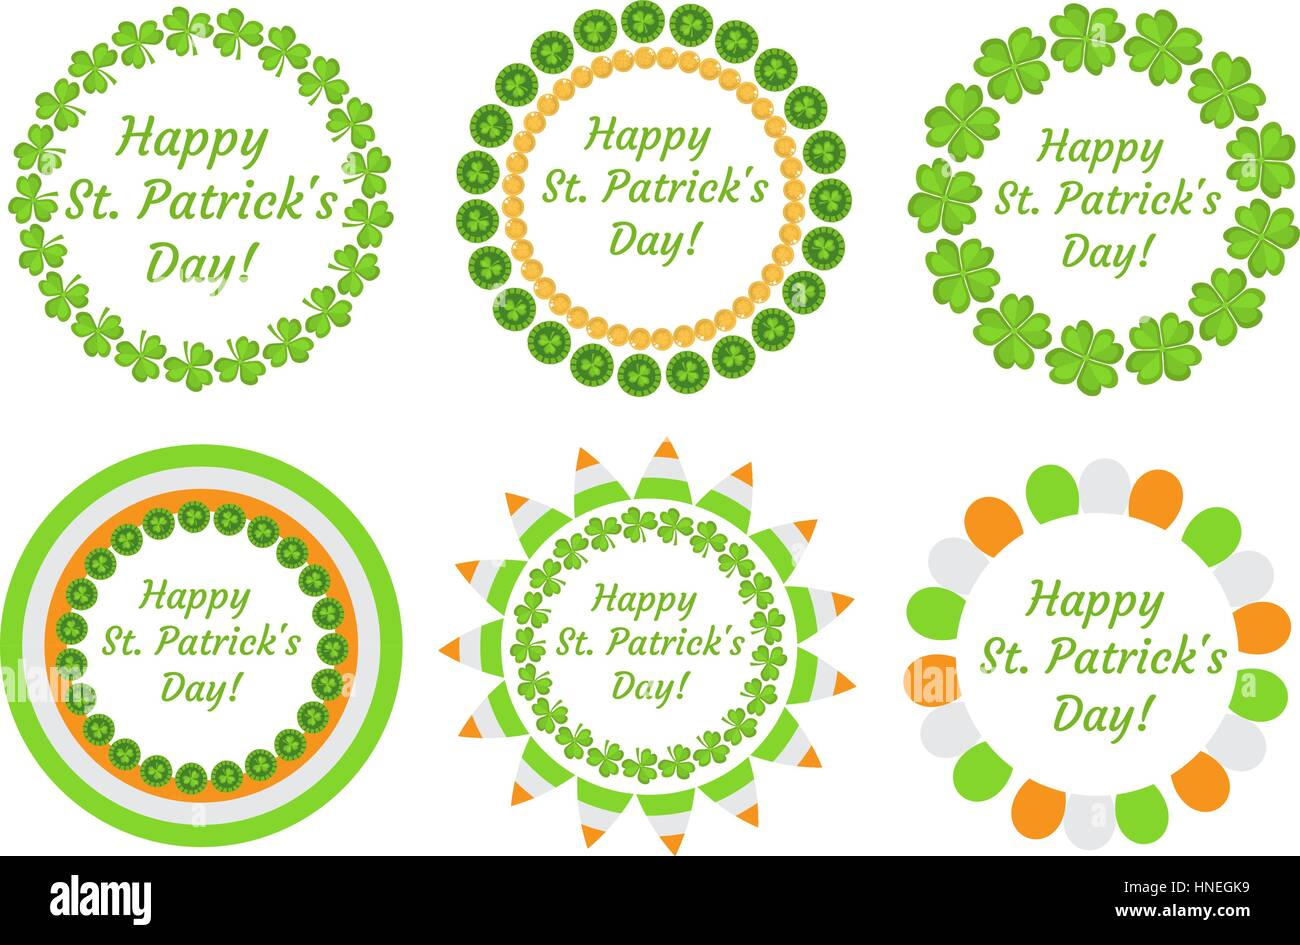 26a8ea2455f1 Shamrock Flags Stock Photos   Shamrock Flags Stock Images - Alamy